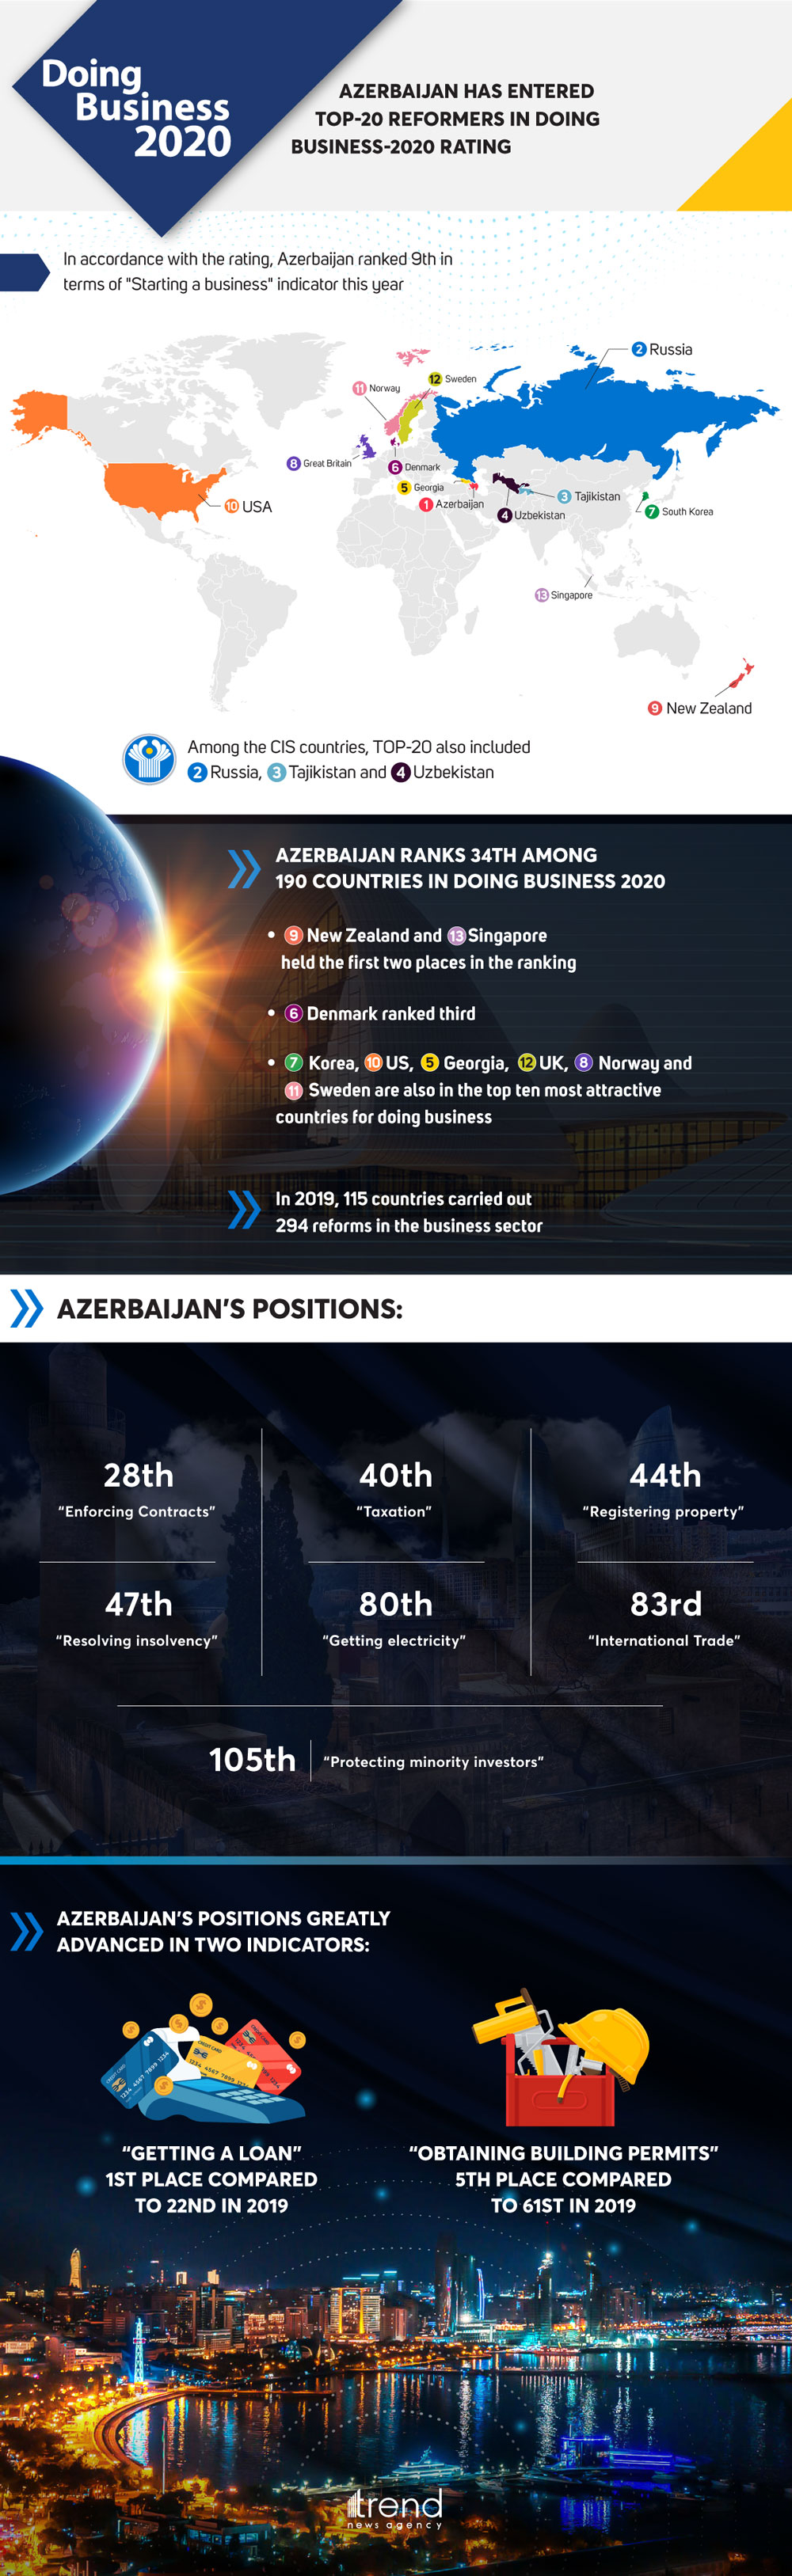 Azerbaijan has entered TOP-20 reformers in Doing Business-2020 rating